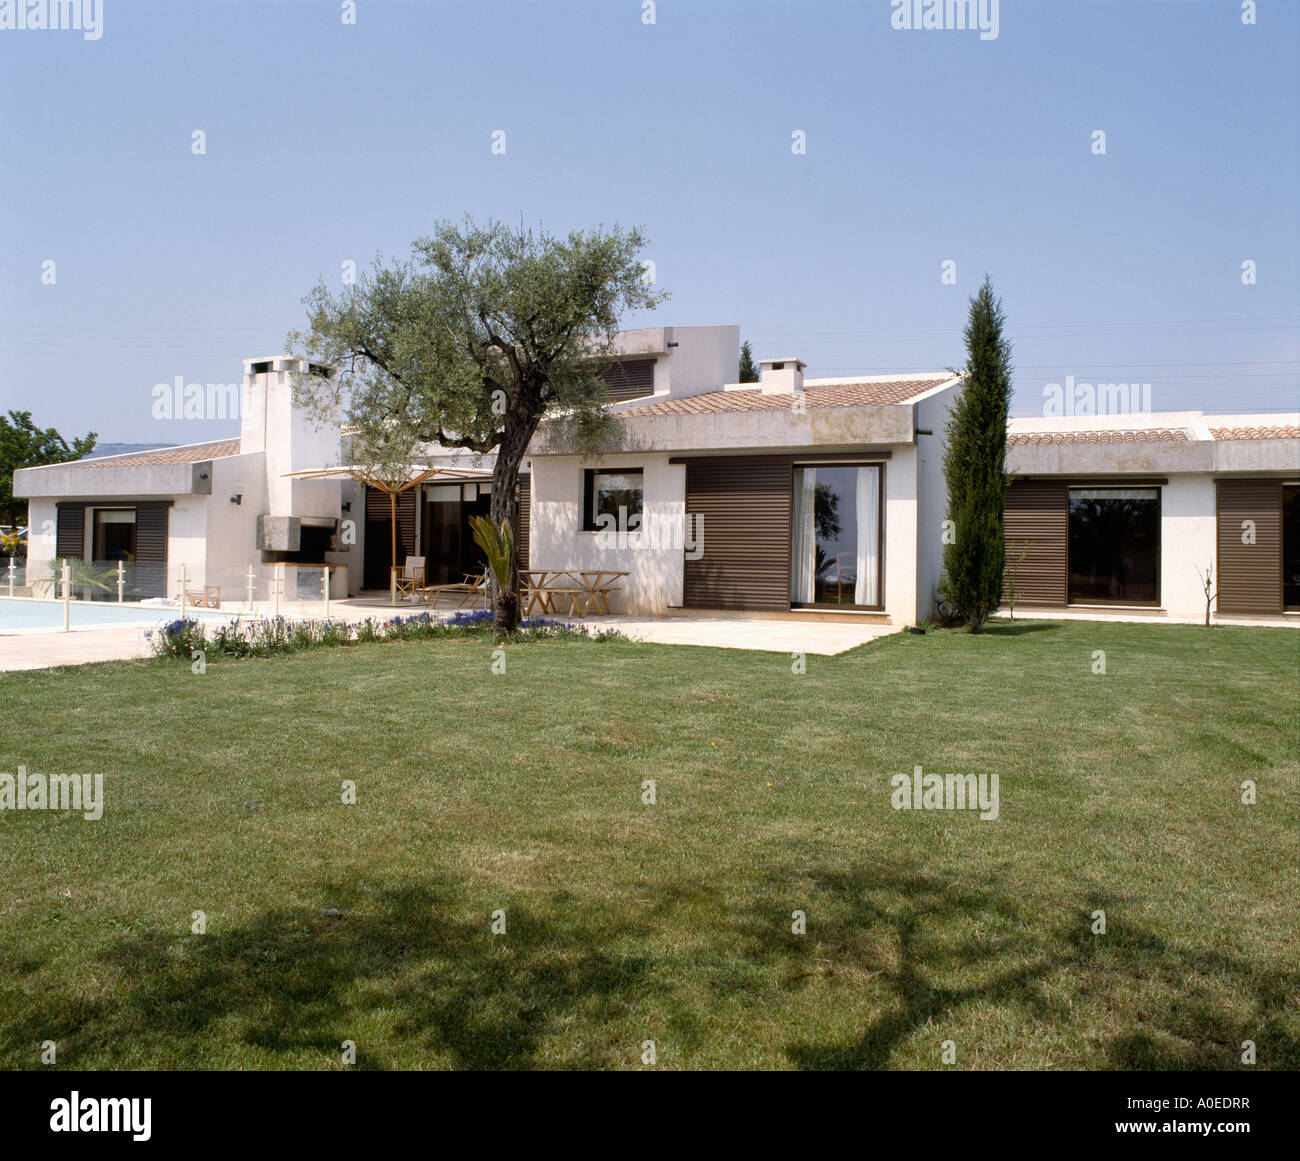 Lawn in front of single storey modern house in provence